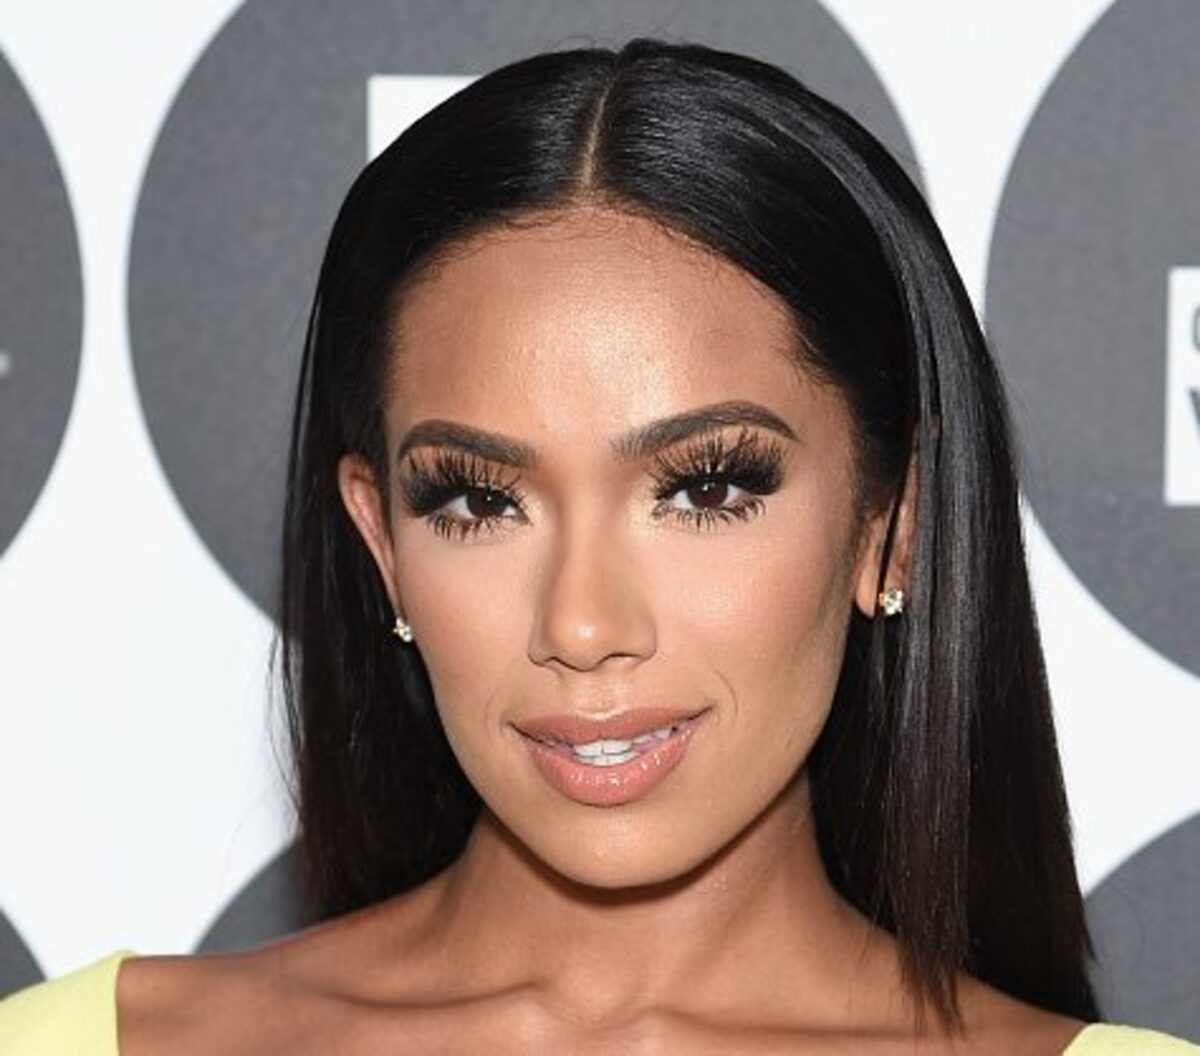 Erica Mena Shares A Throwback Pic On Social Media And Has Fans In Awe